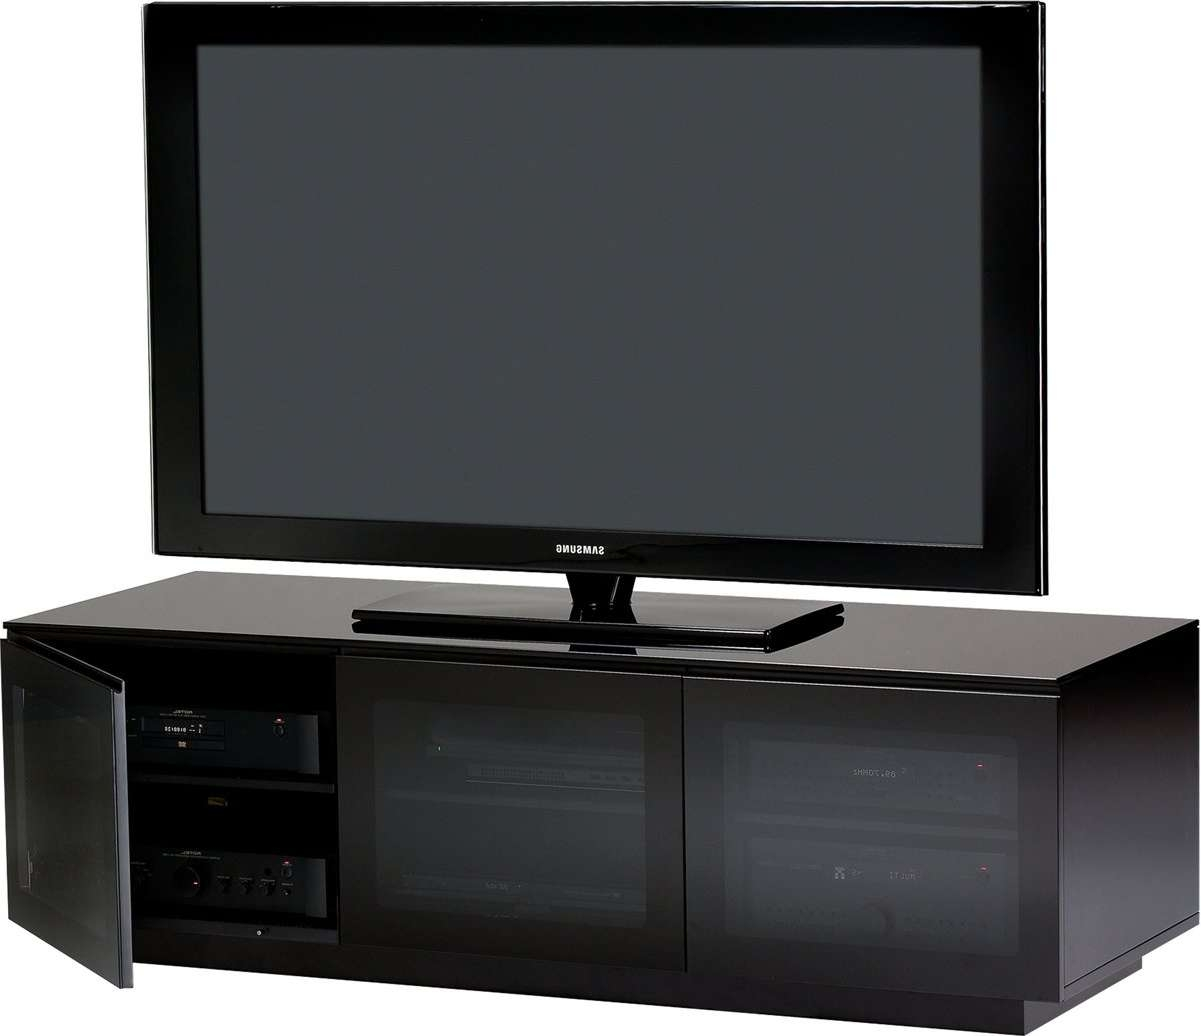 Bdi Mirage 8227 Tv Stands With Black Glass Tv Cabinets (View 4 of 20)